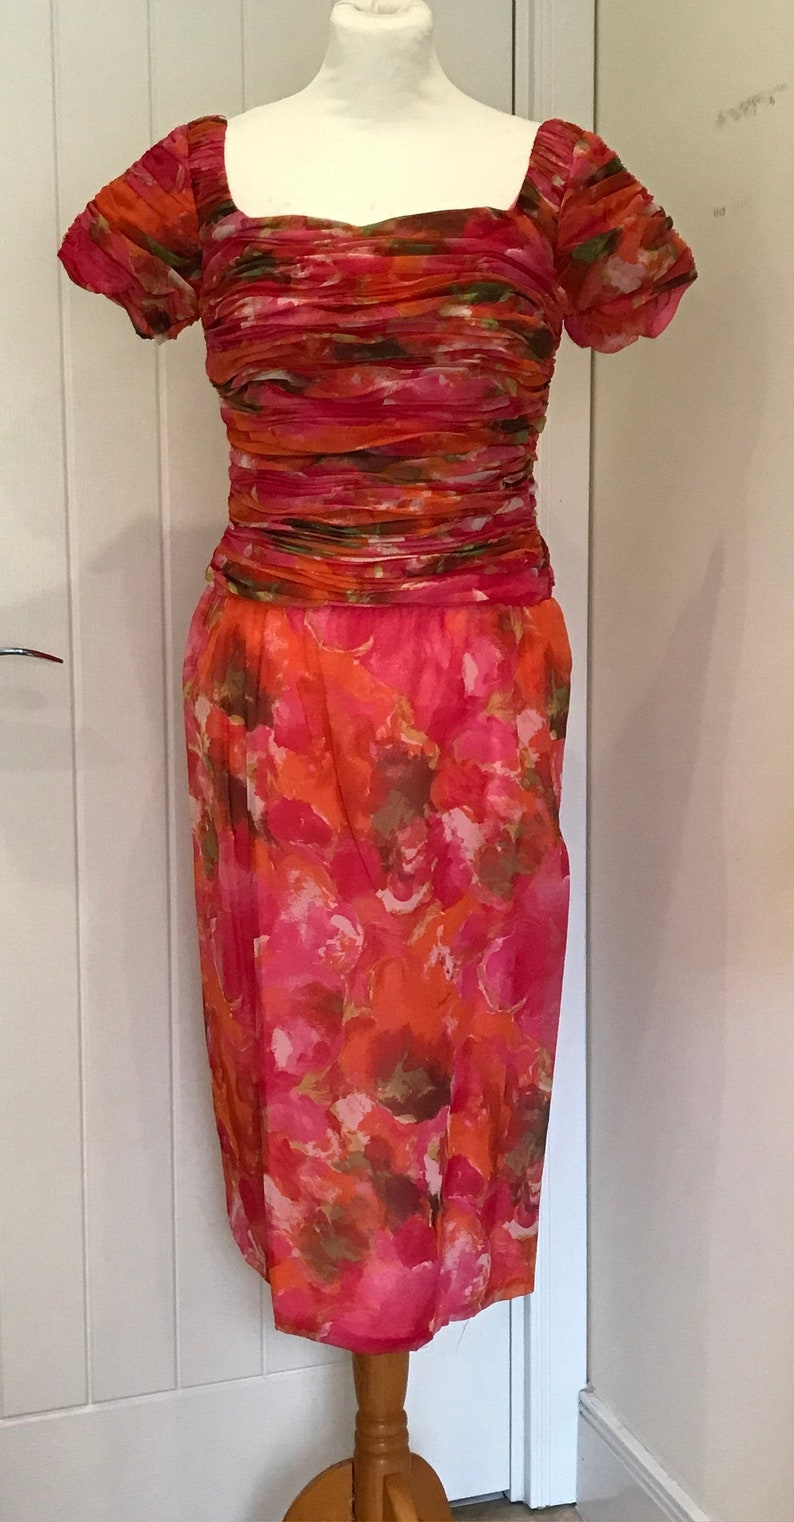 Fabulous and Funky Wiggle Dress by London Town Vintage 1960/'s Pencil Dress 1960s Dress Swinging 60s Film Prop